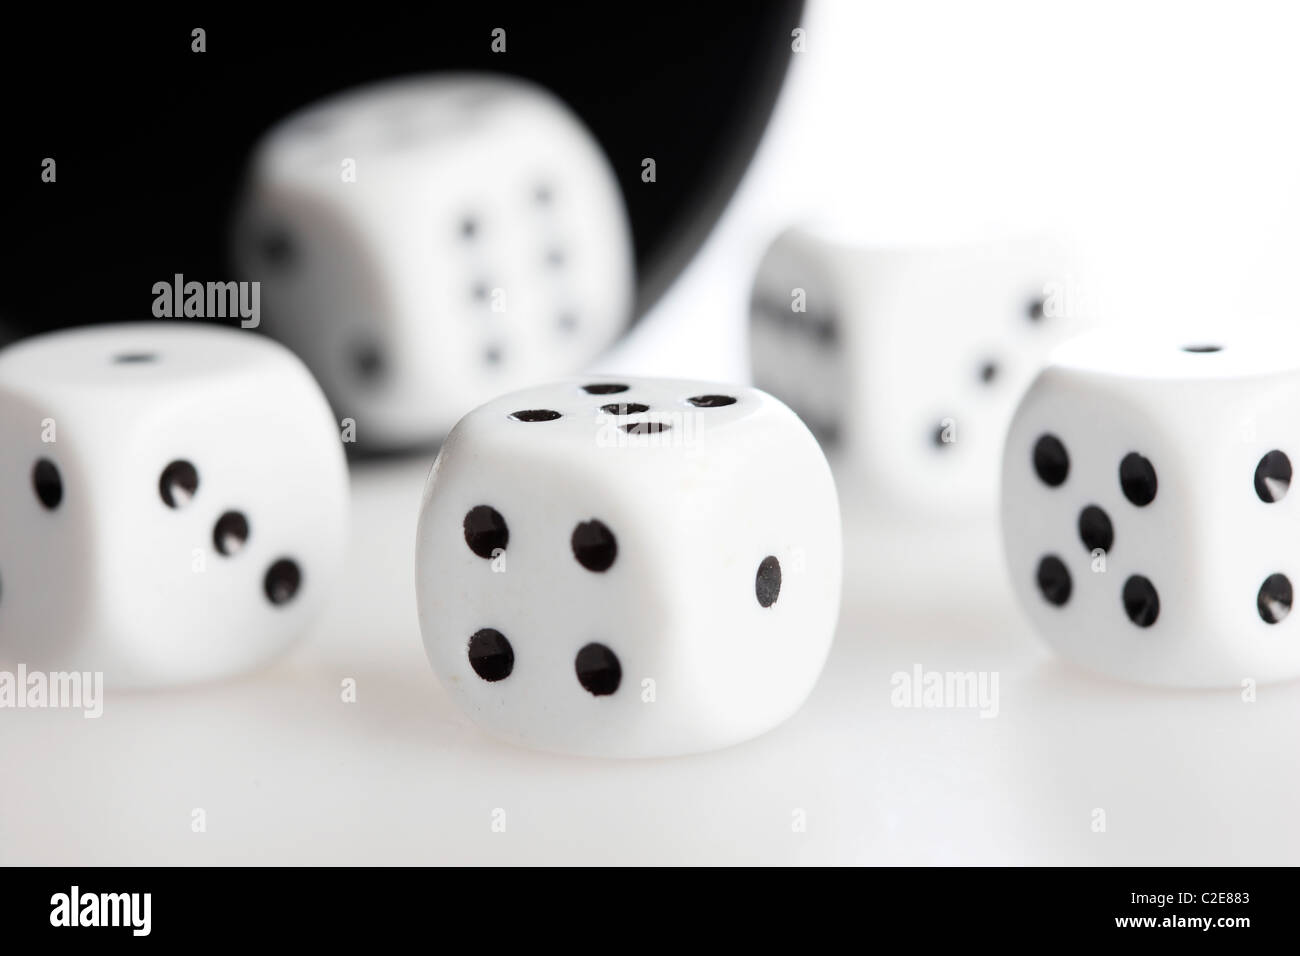 White dices. - Stock Image